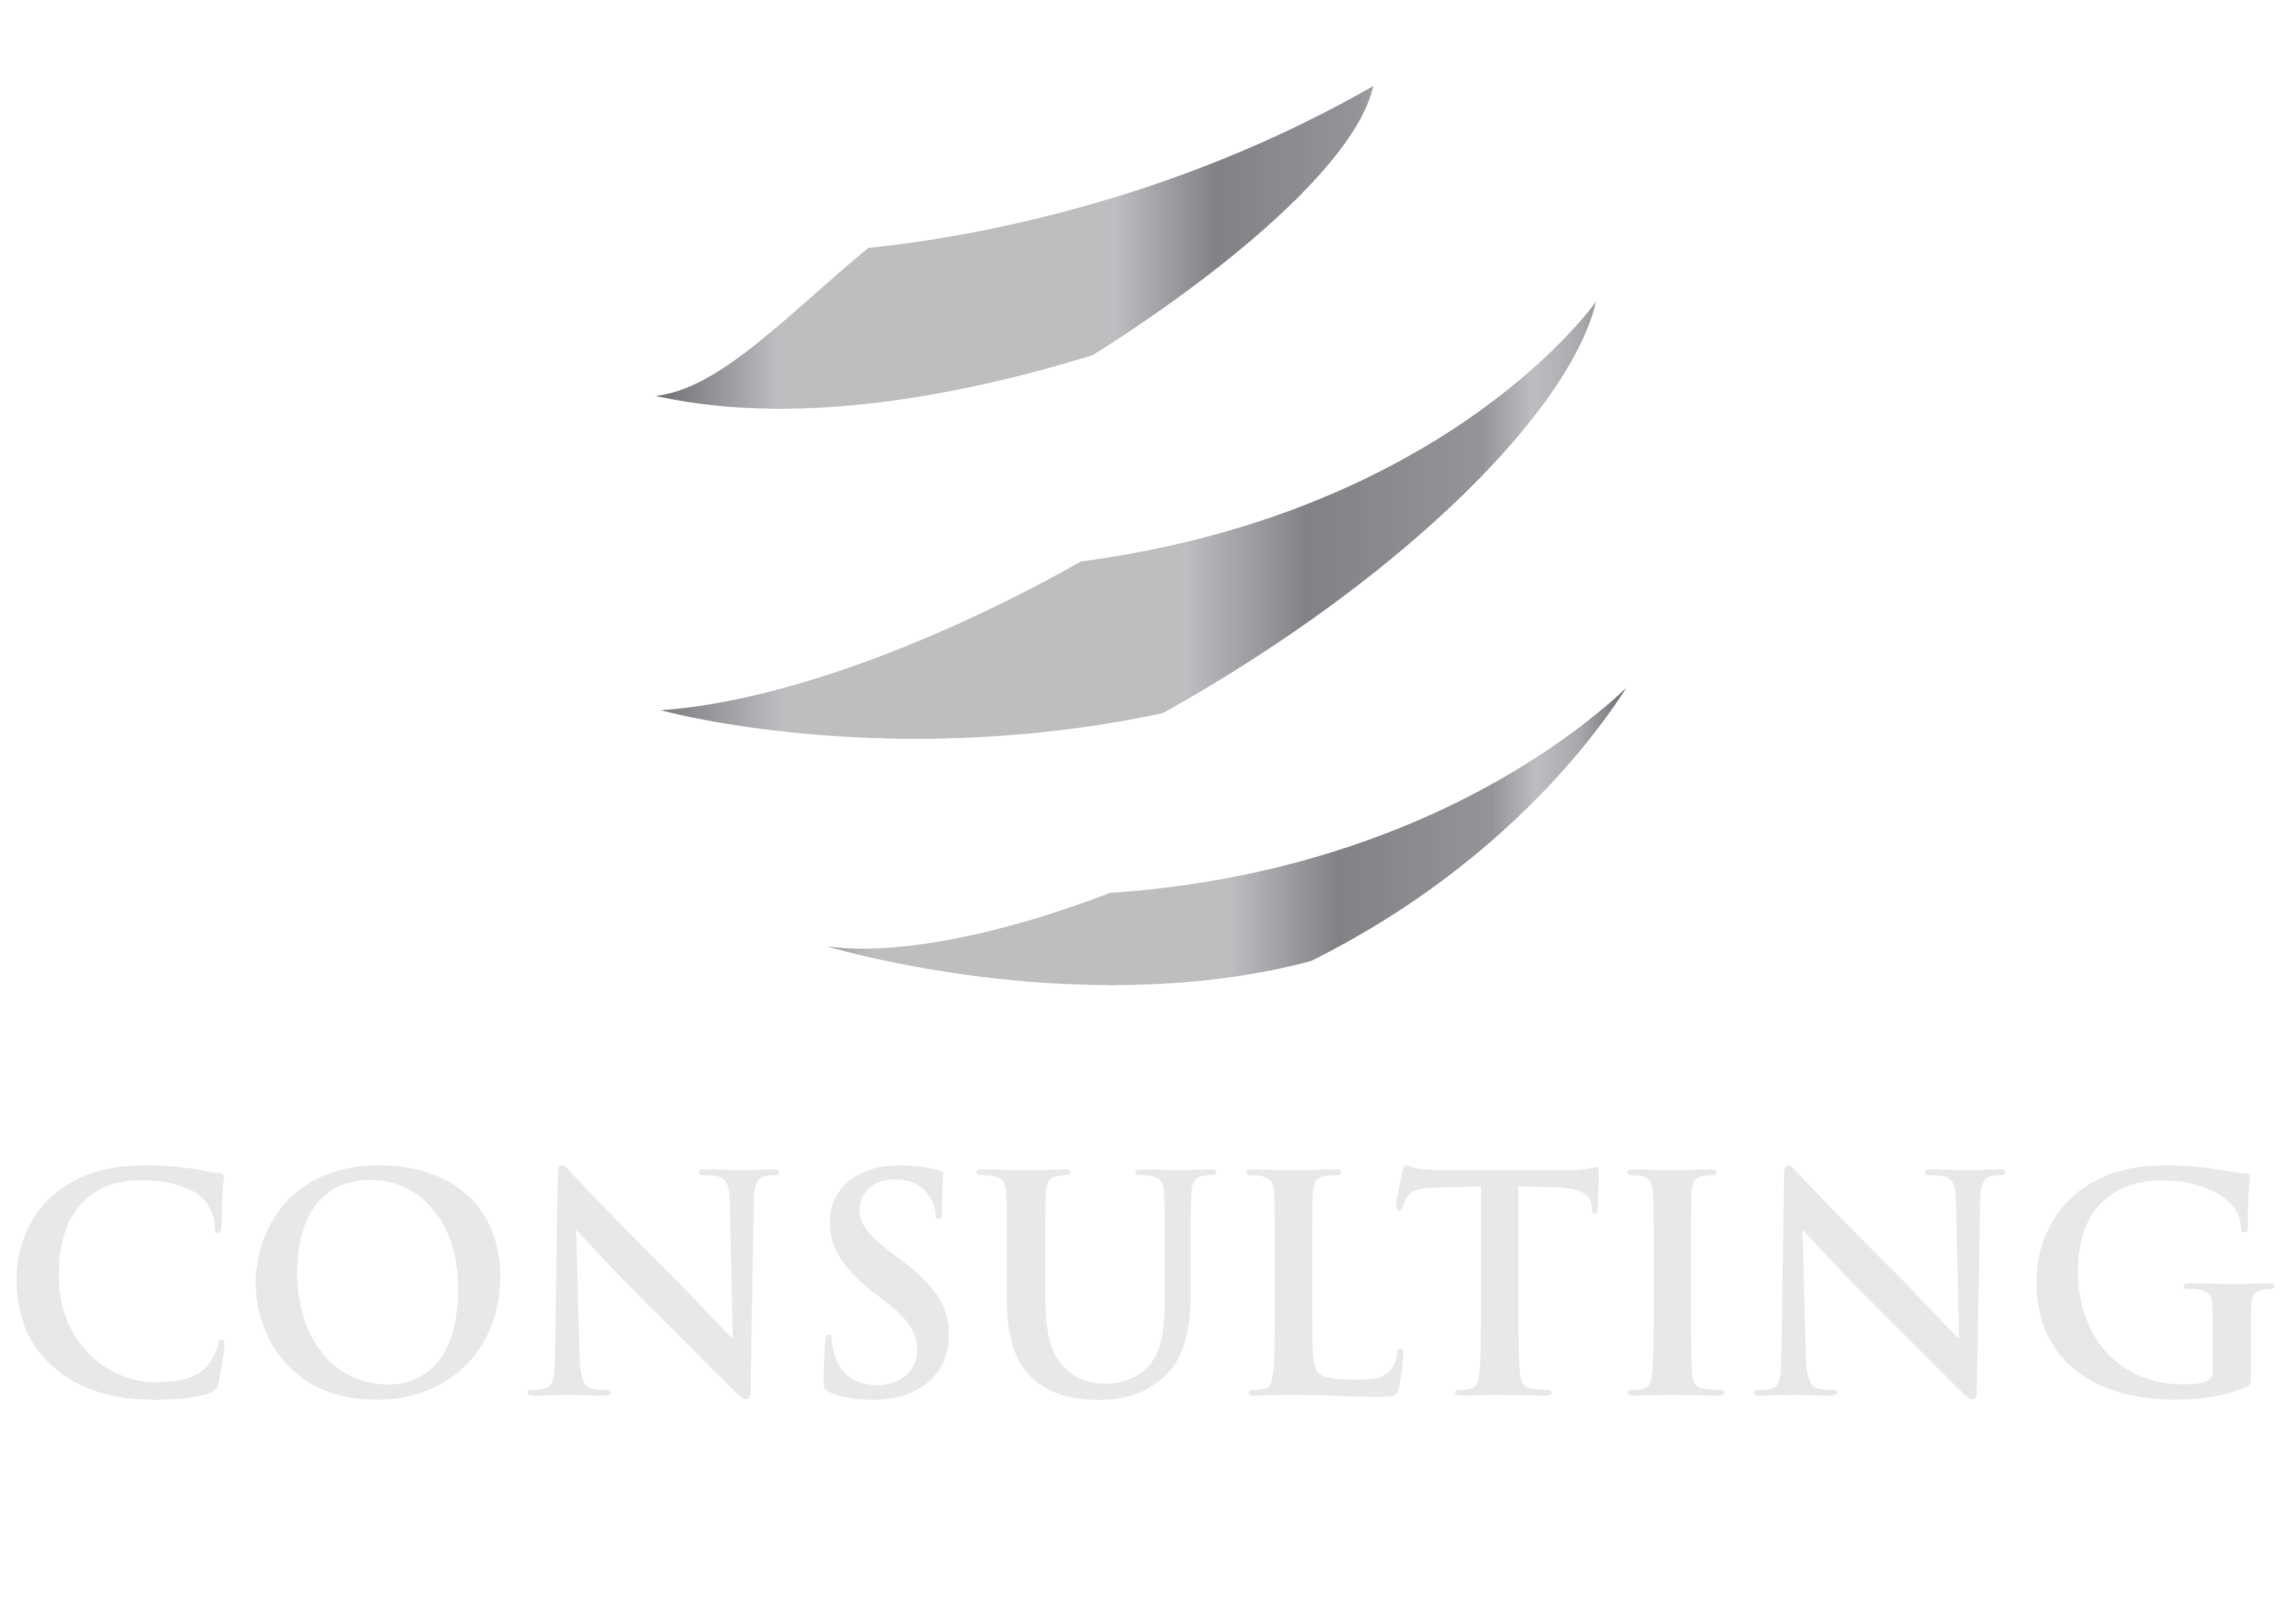 Consulting Mastered